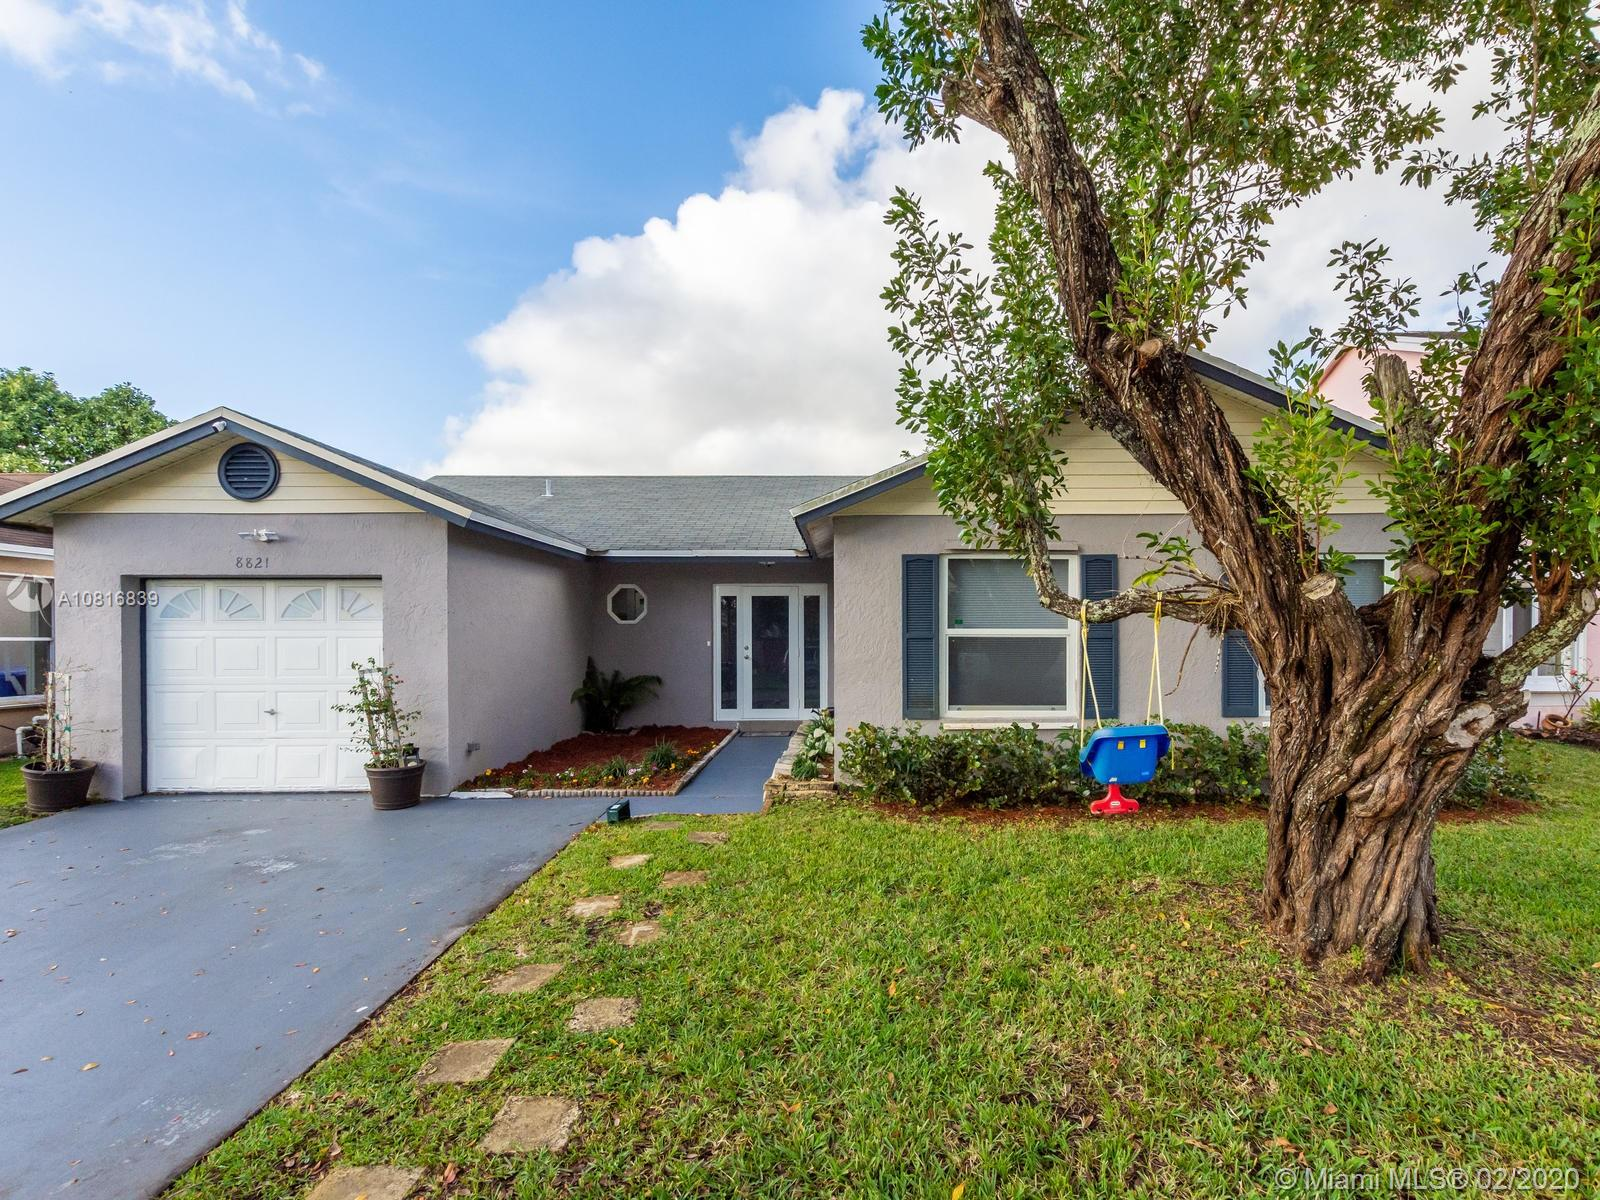 3/2 in a quiet community, with many upgrades!  Remodeled kitchen with beautiful quartz countertops and new stainless steel appliances, hurricane impact windows and doors, new A/C with Honeywell SMART Thermostat, large laundry room with new washer and dryer, bathroom sinks and cabinets updated, and converted garage with A/C that could be used as an office, gym, workshop, or game room. Tankless water heater and attic is insulated.